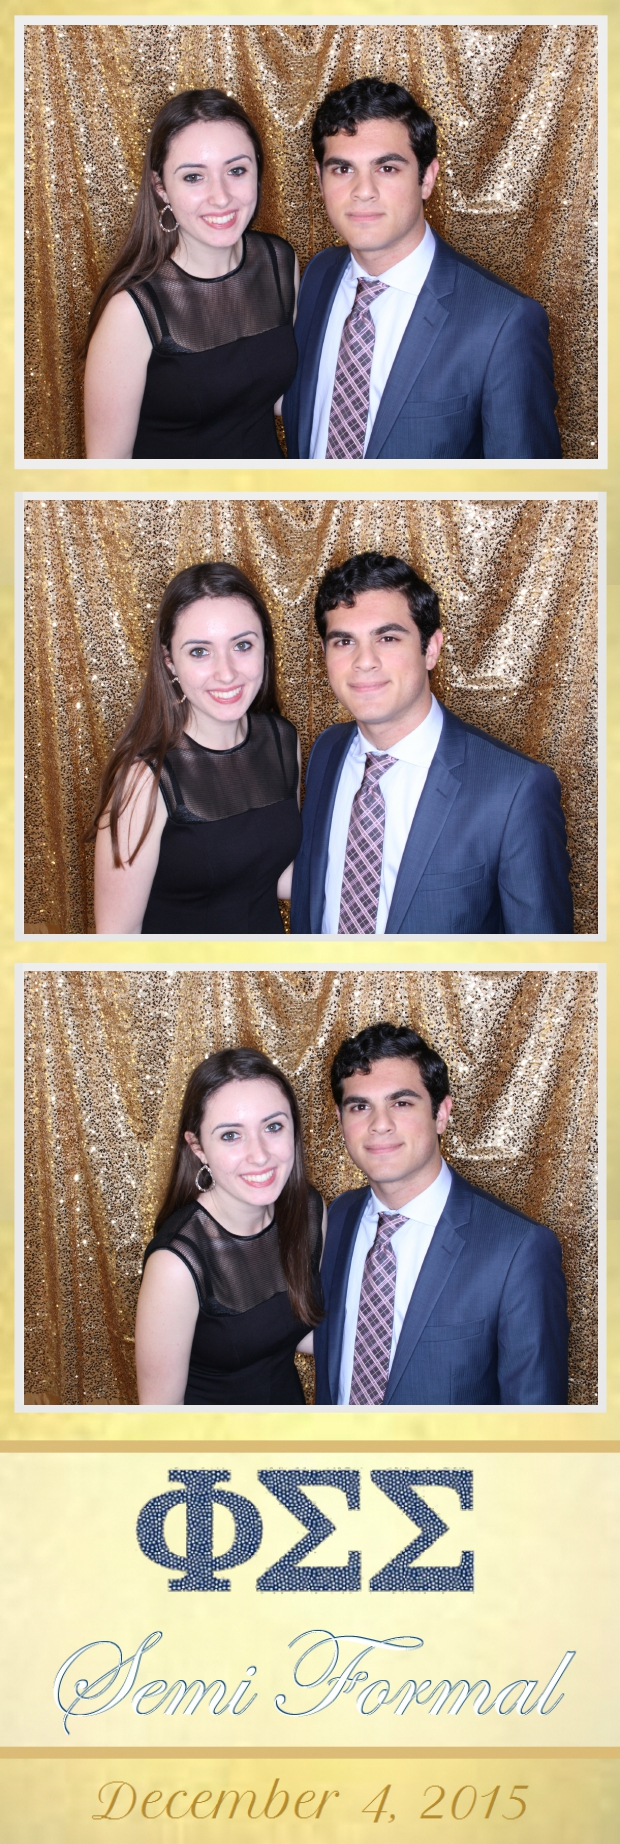 Guest House Events Photo Booth Phi Sigma Sigma Semi Formal (51).jpg